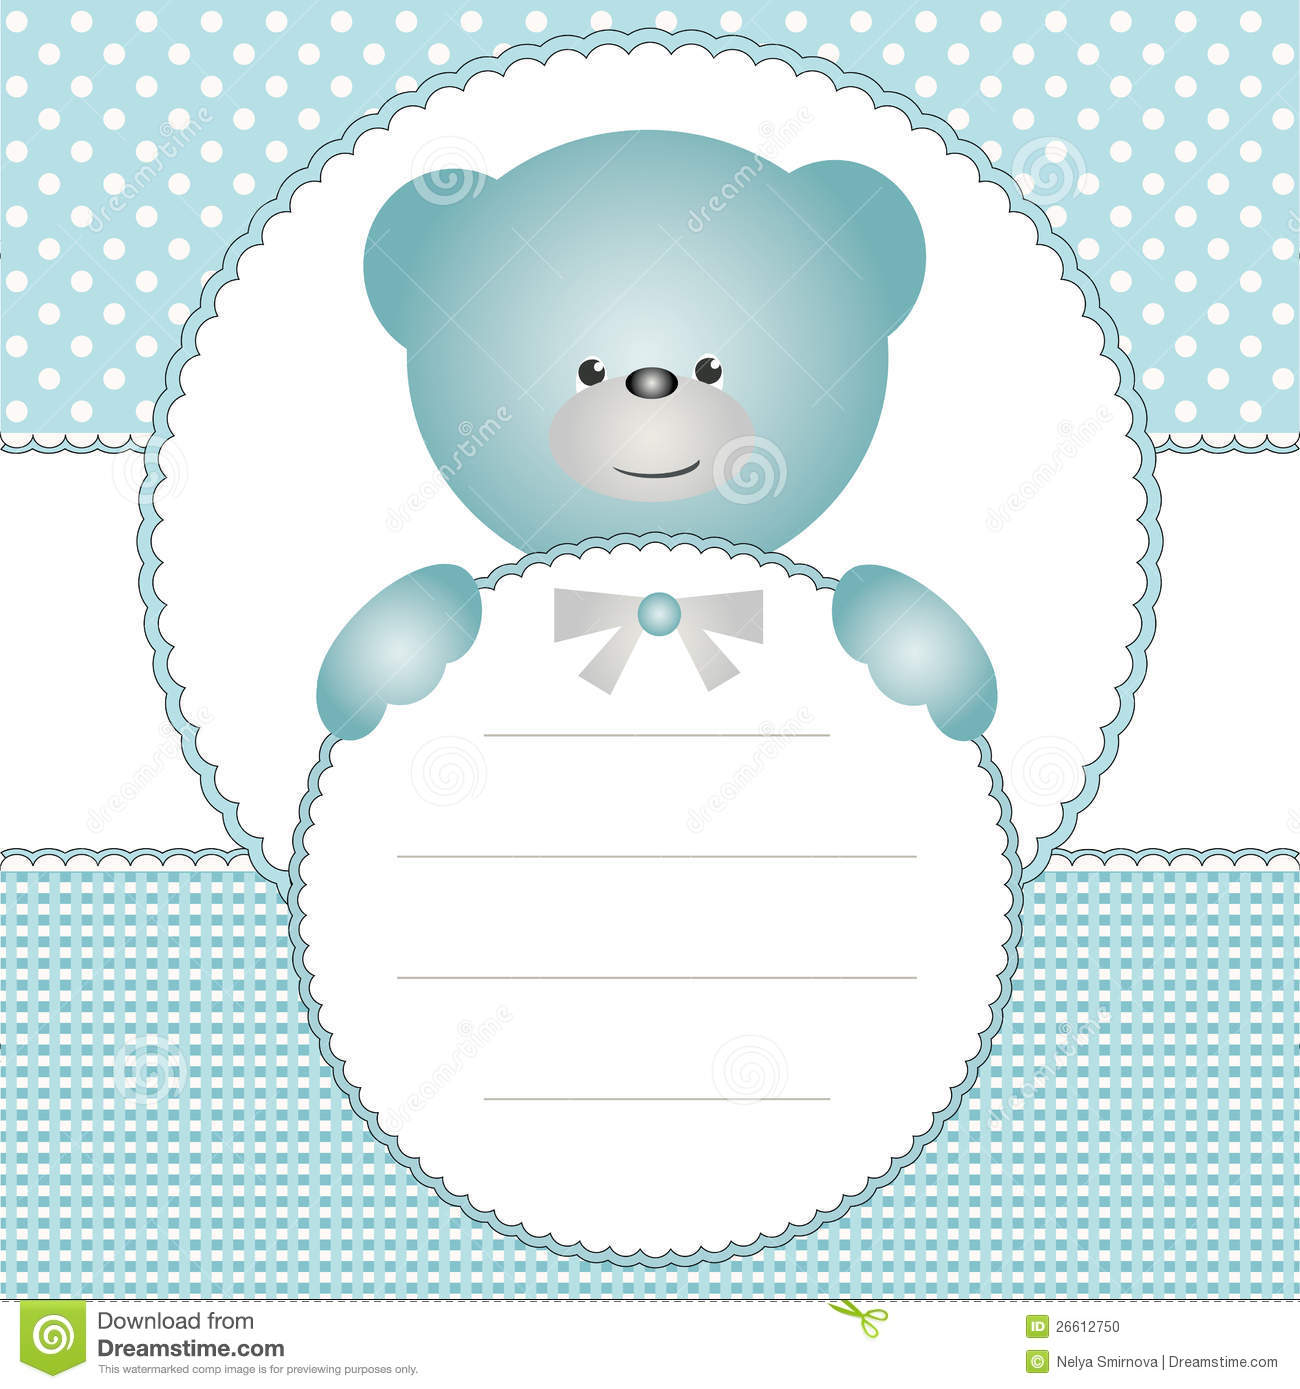 Invitation Card With Teddy Bear Stock Vector Illustration of